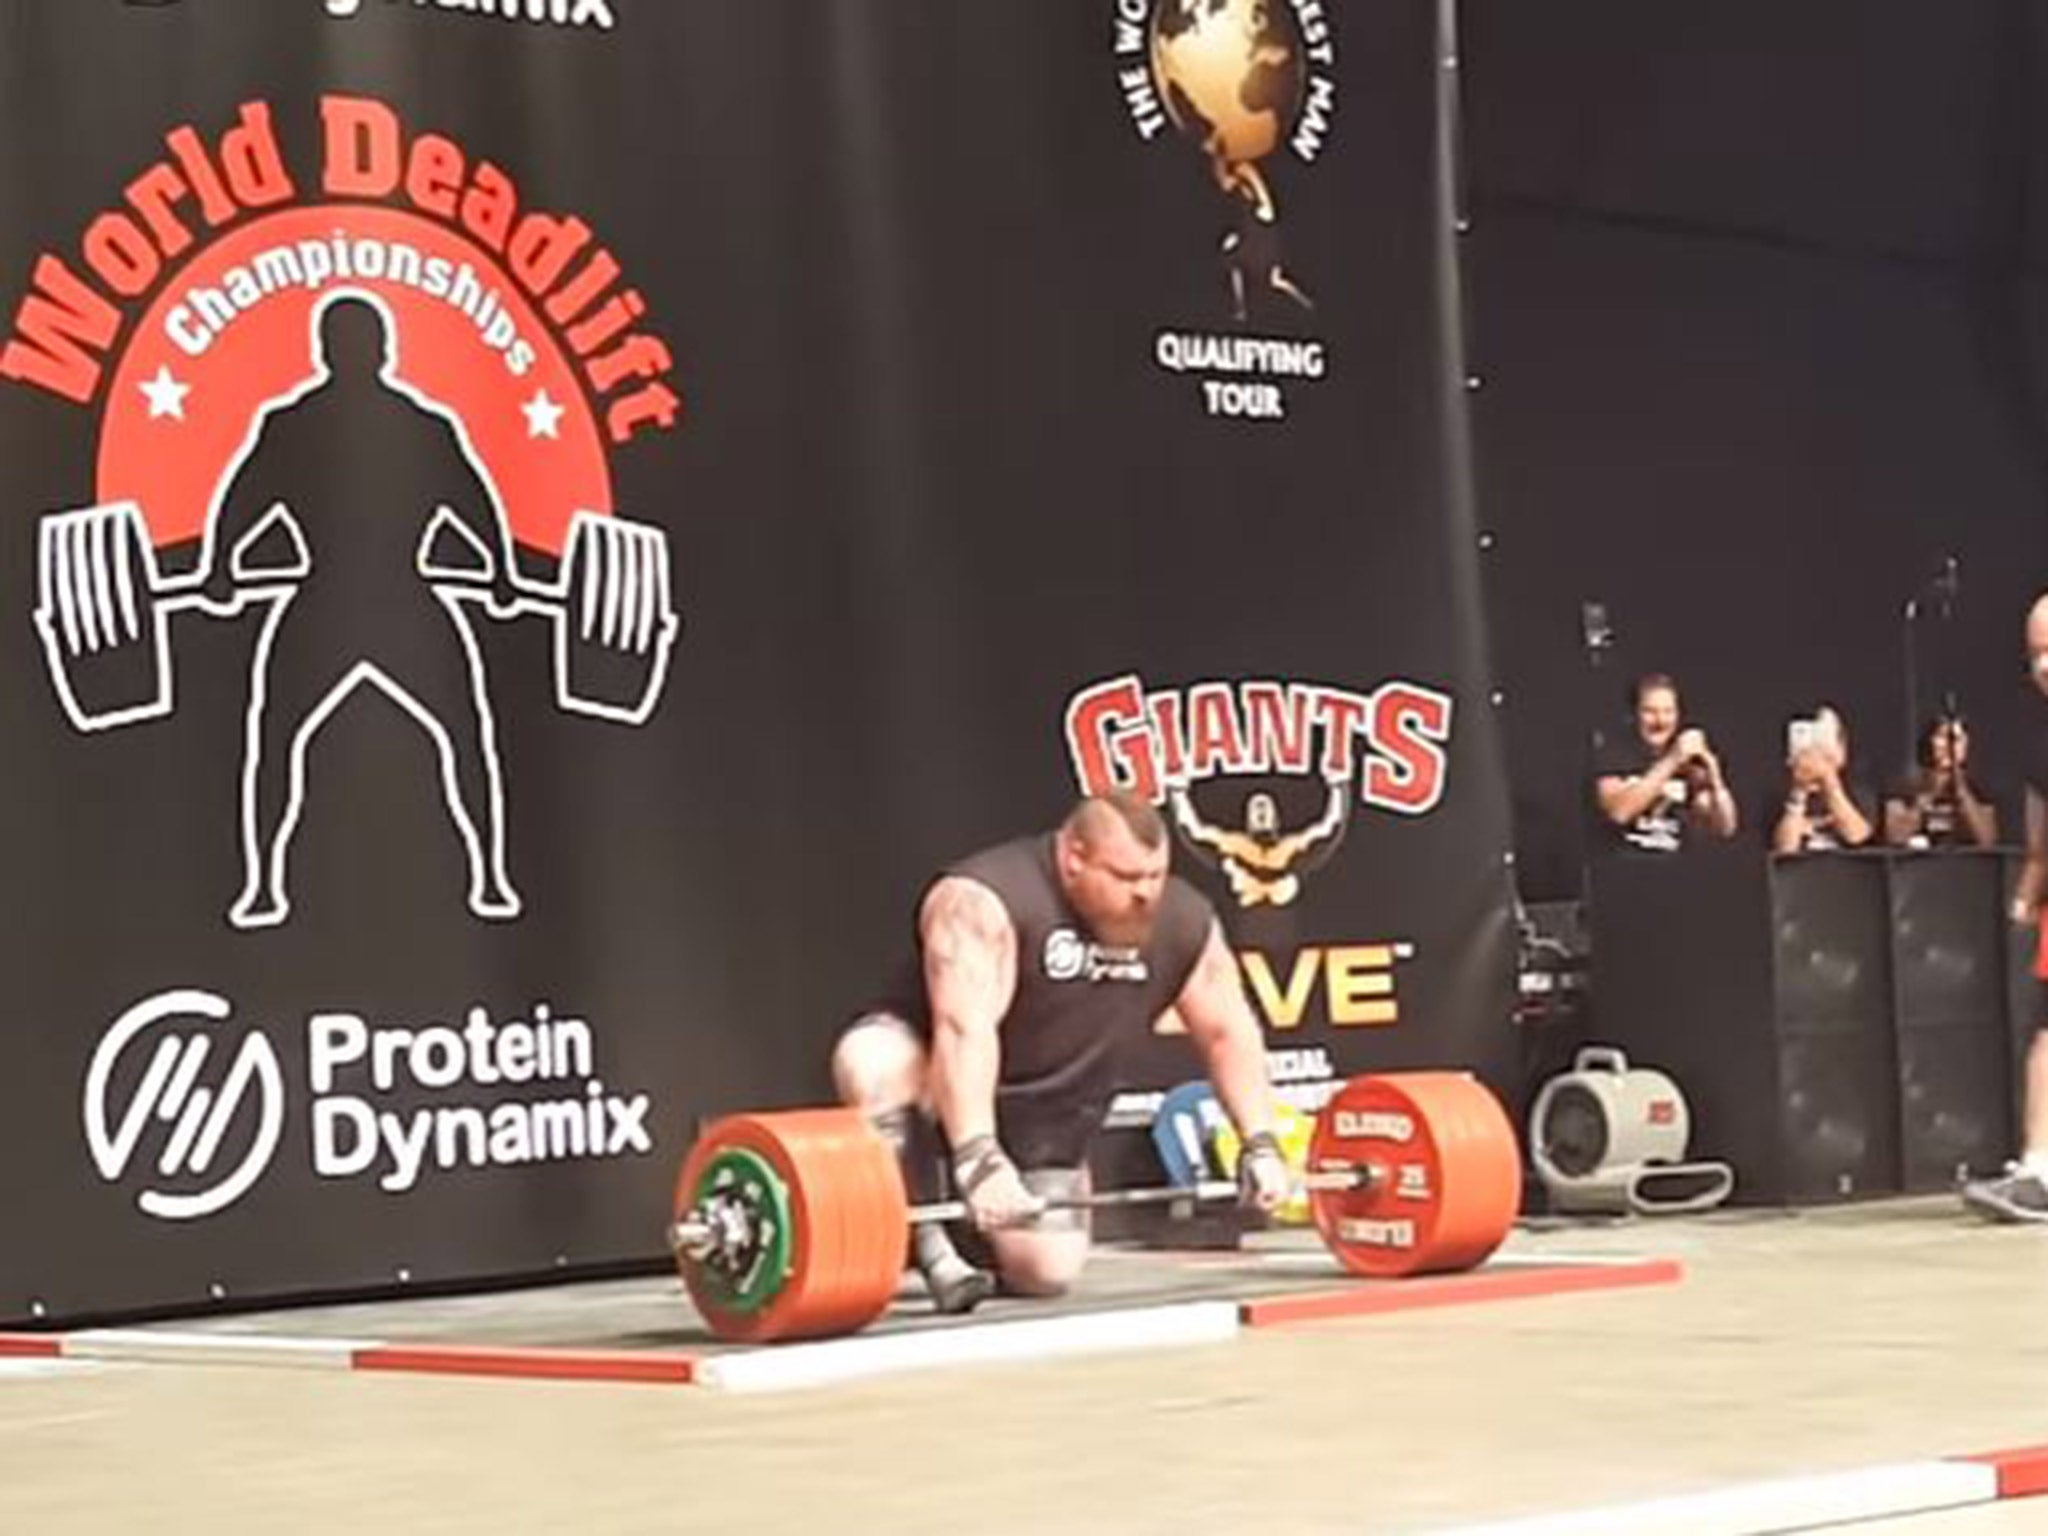 Eddie Hall nearly died after passing out following new